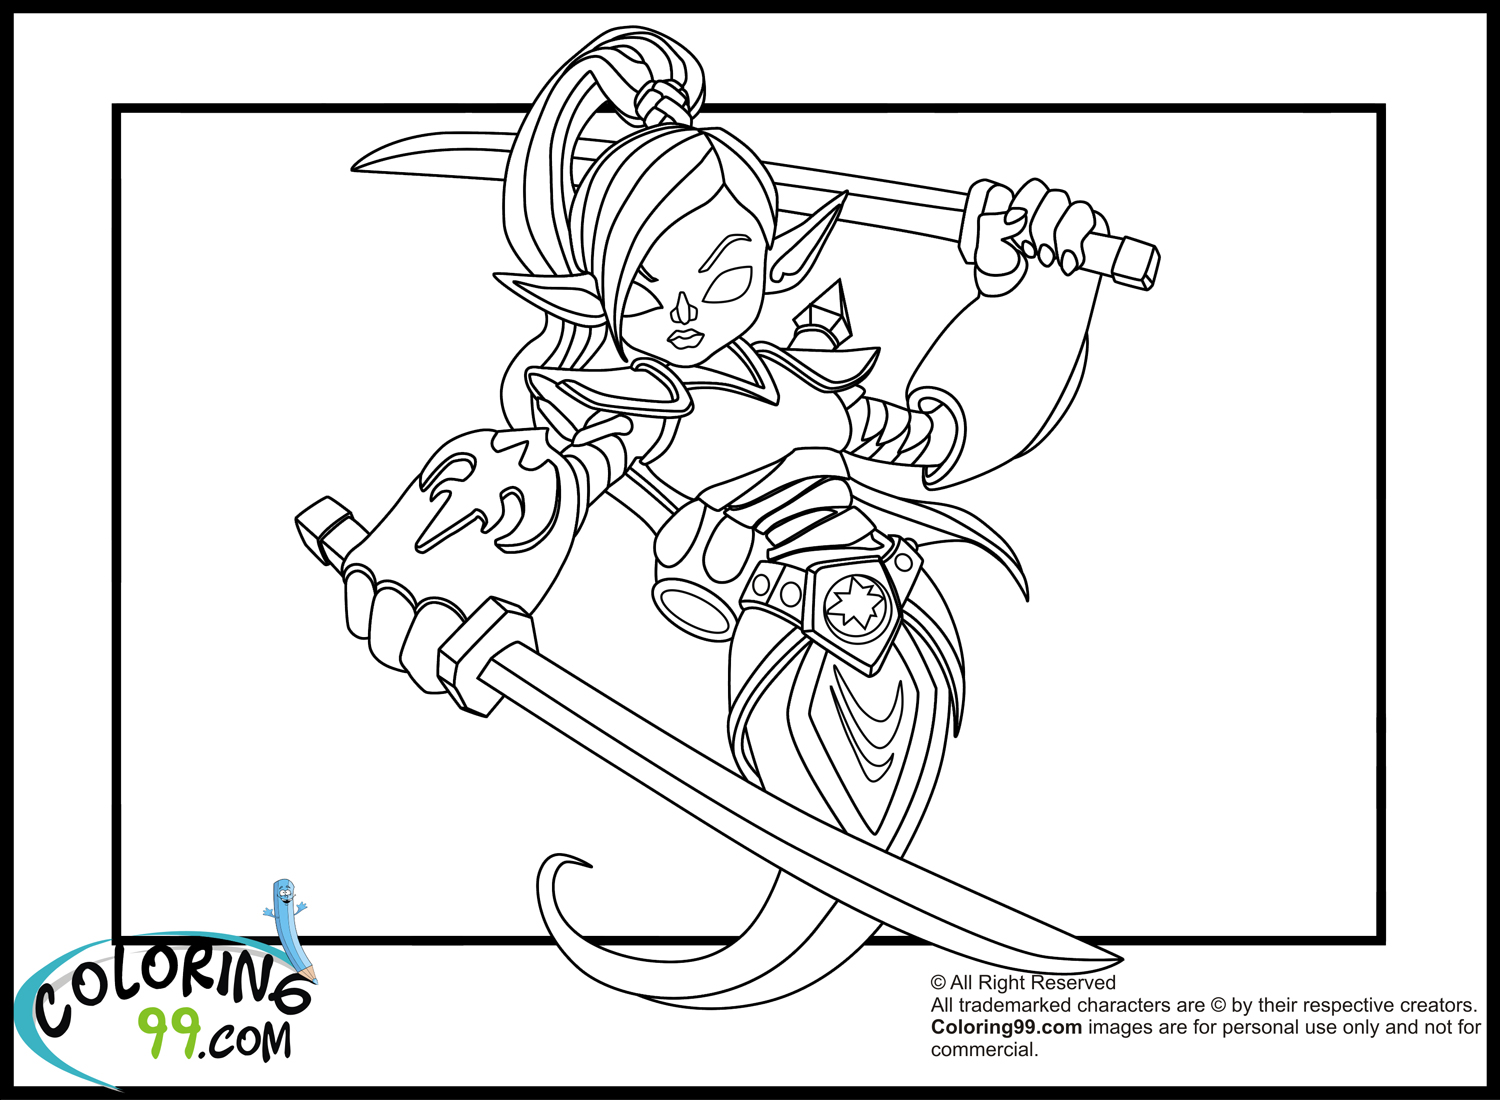 Eye brawl the skylander free colouring pages for Skylanders giants coloring pages eye brawl